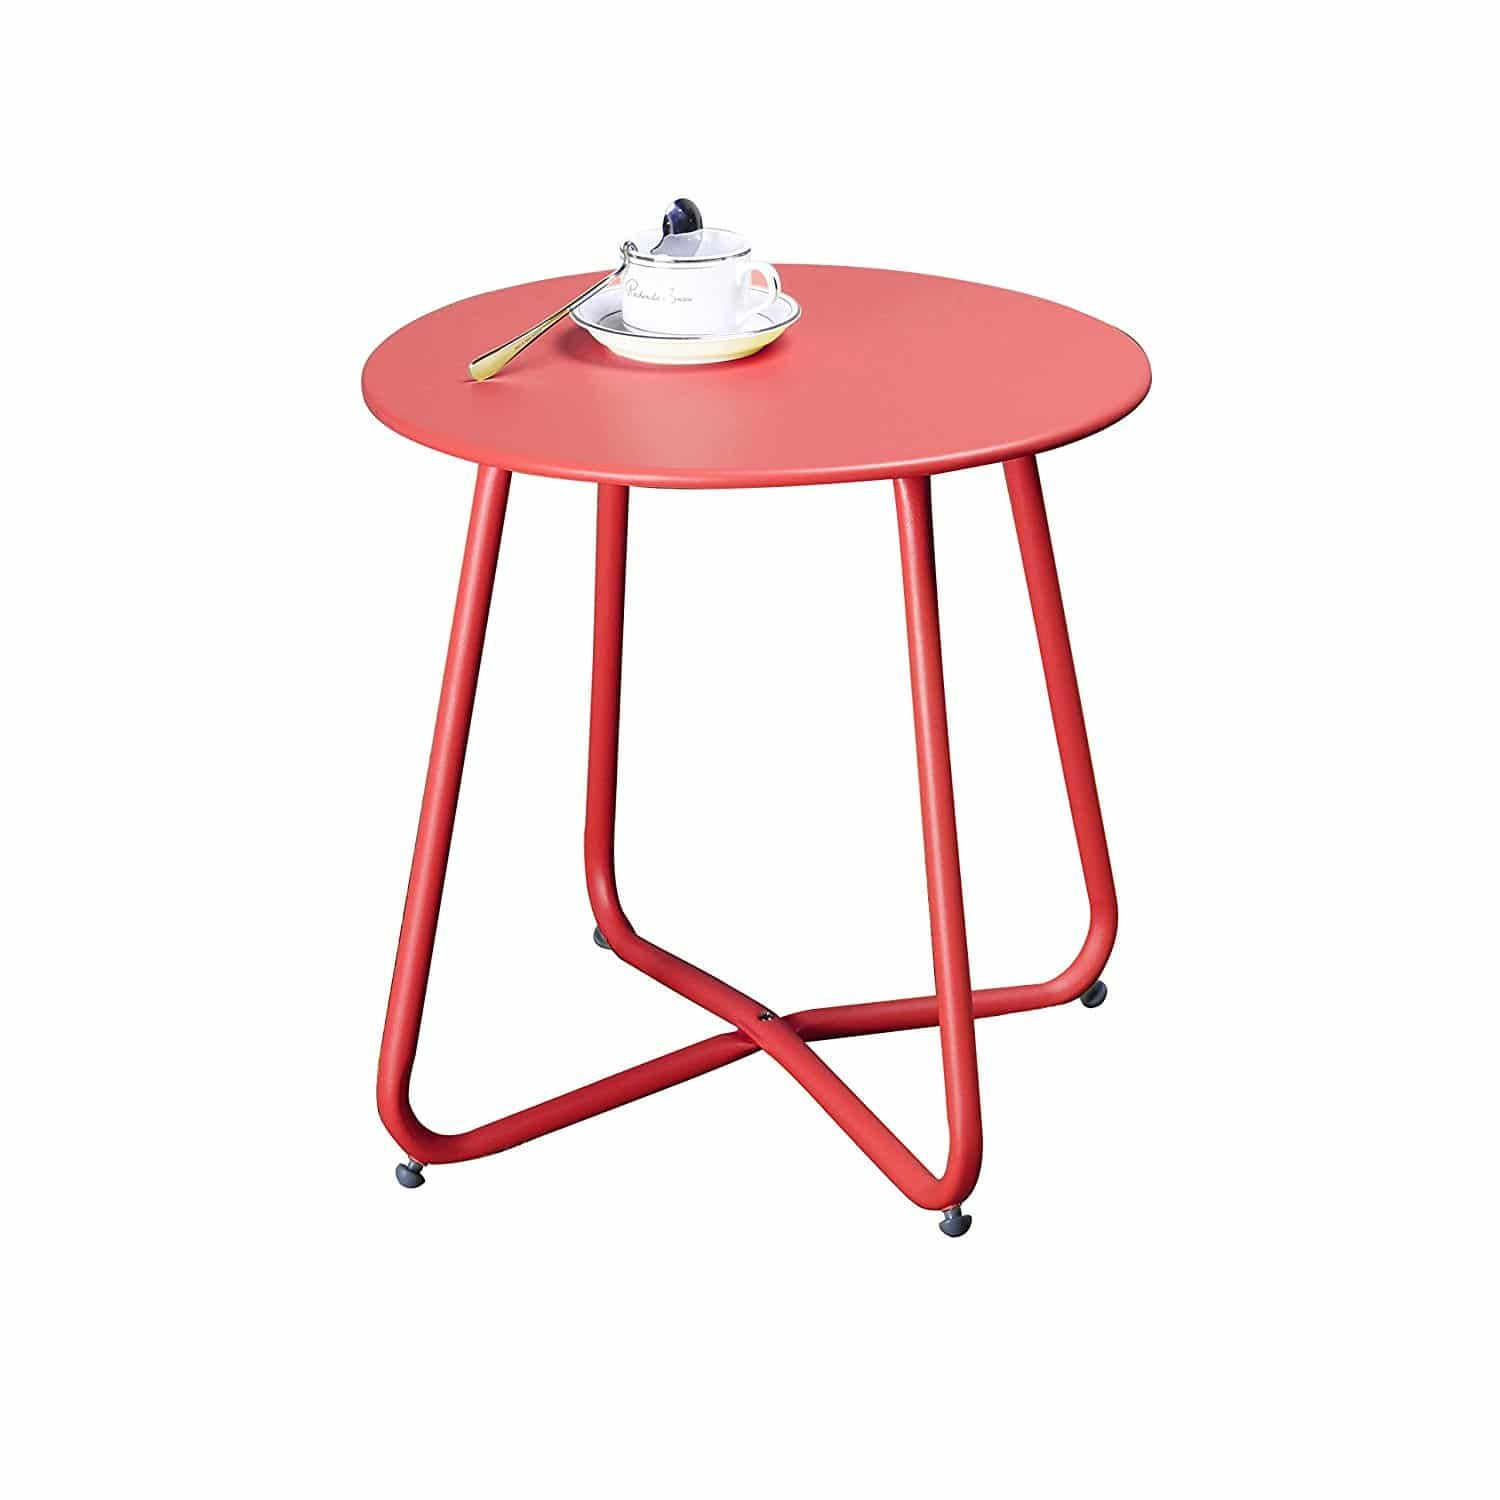 top best outdoor coffee tables mosaic accent table kohls grand patio steel weather resistant side red small round union jack furniture vienna dining room narrow nesting square